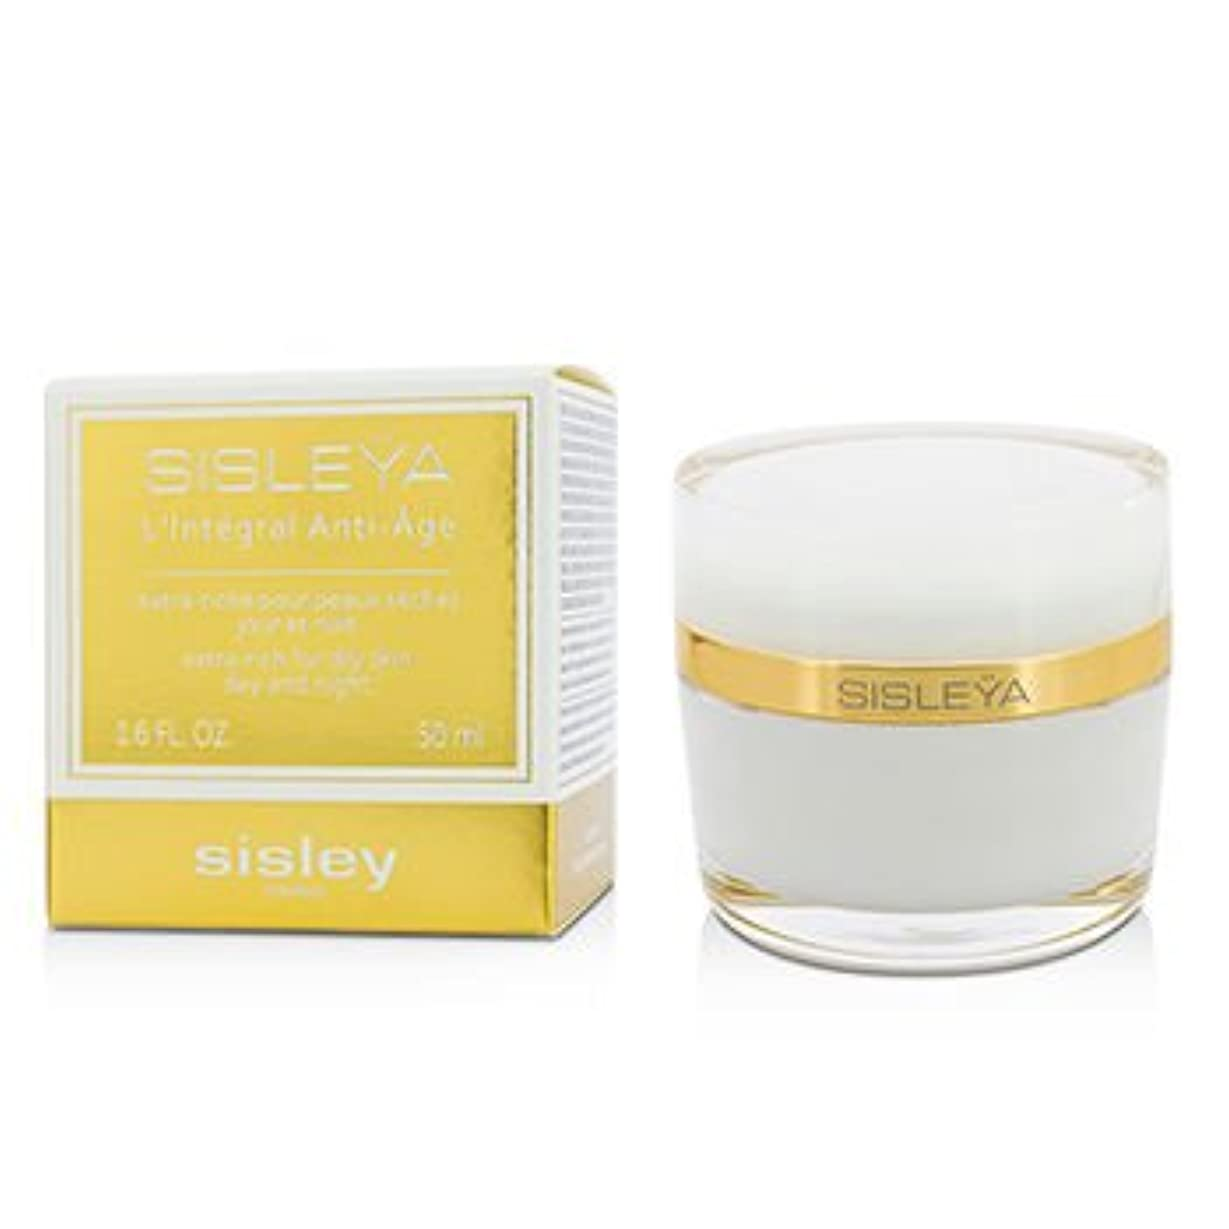 ピンク女の子余計な[Sisley] Sisleya LIntegral Anti-Age Day And Night Cream - Extra Rich for Dry skin 50ml/1.6oz